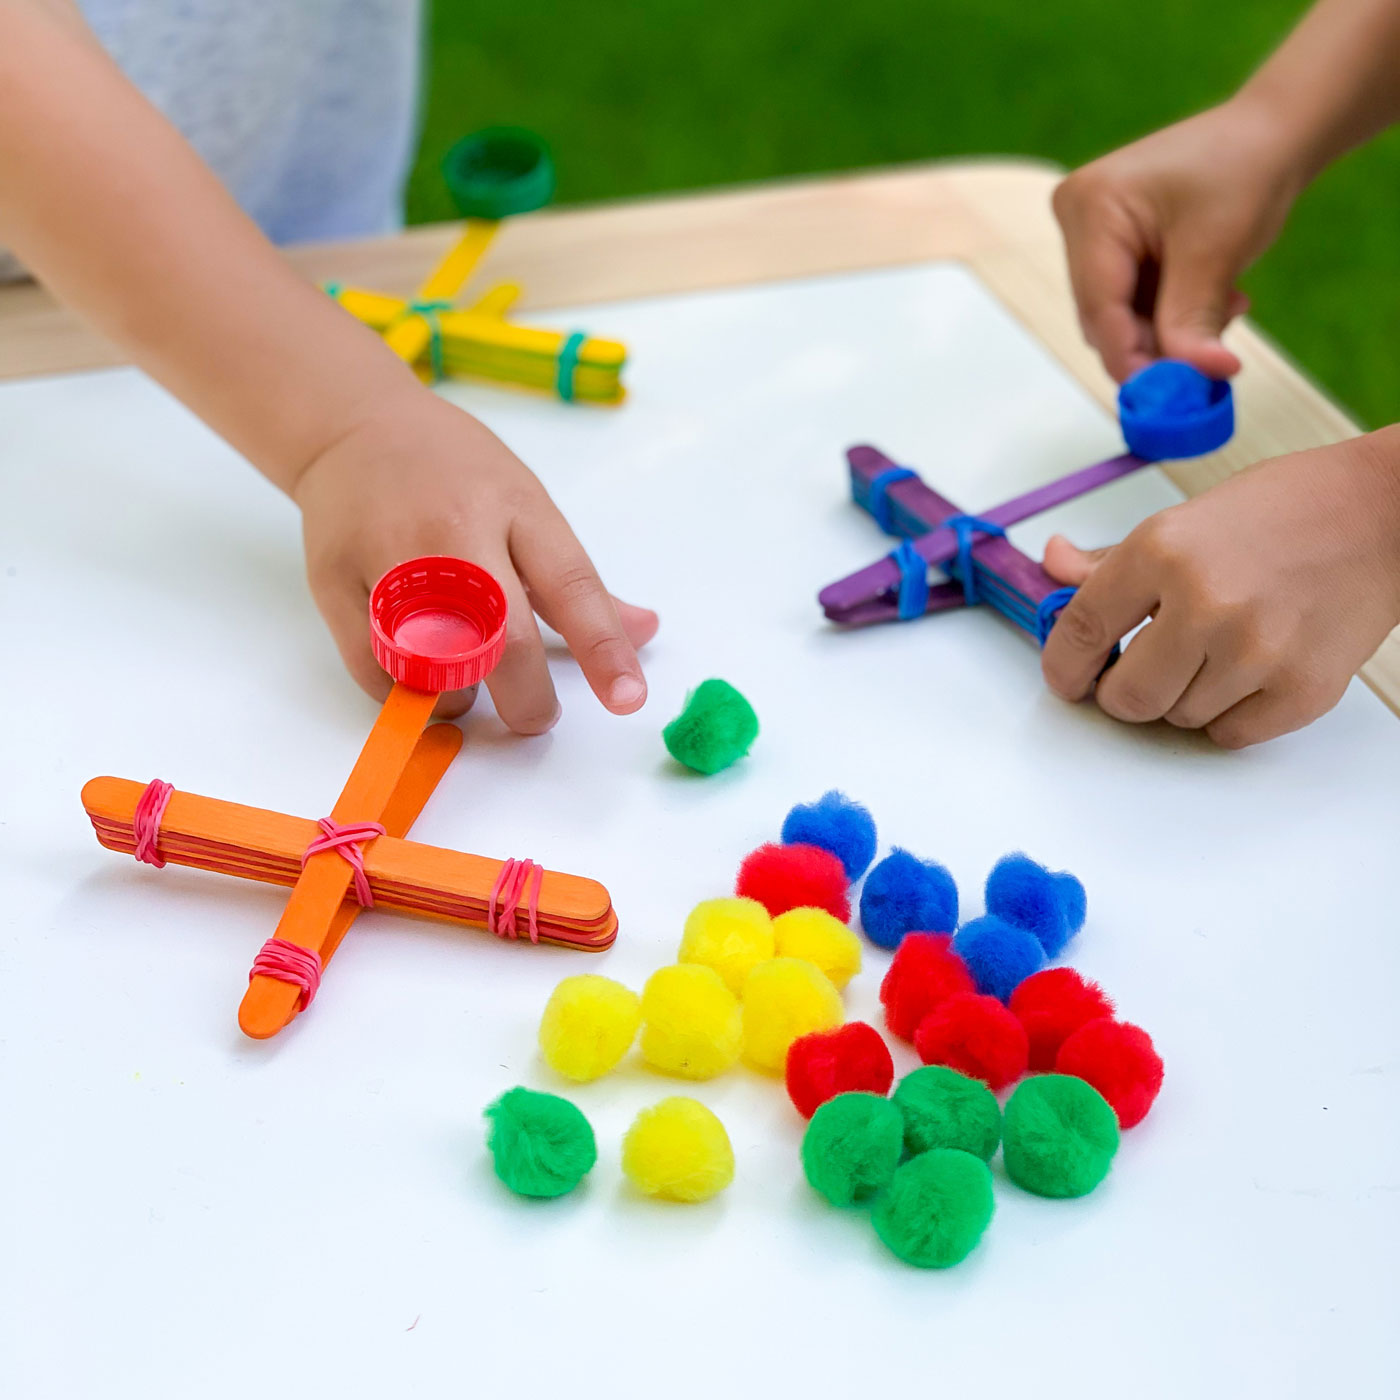 Make a DIY Catapult Out of Simple Supplies